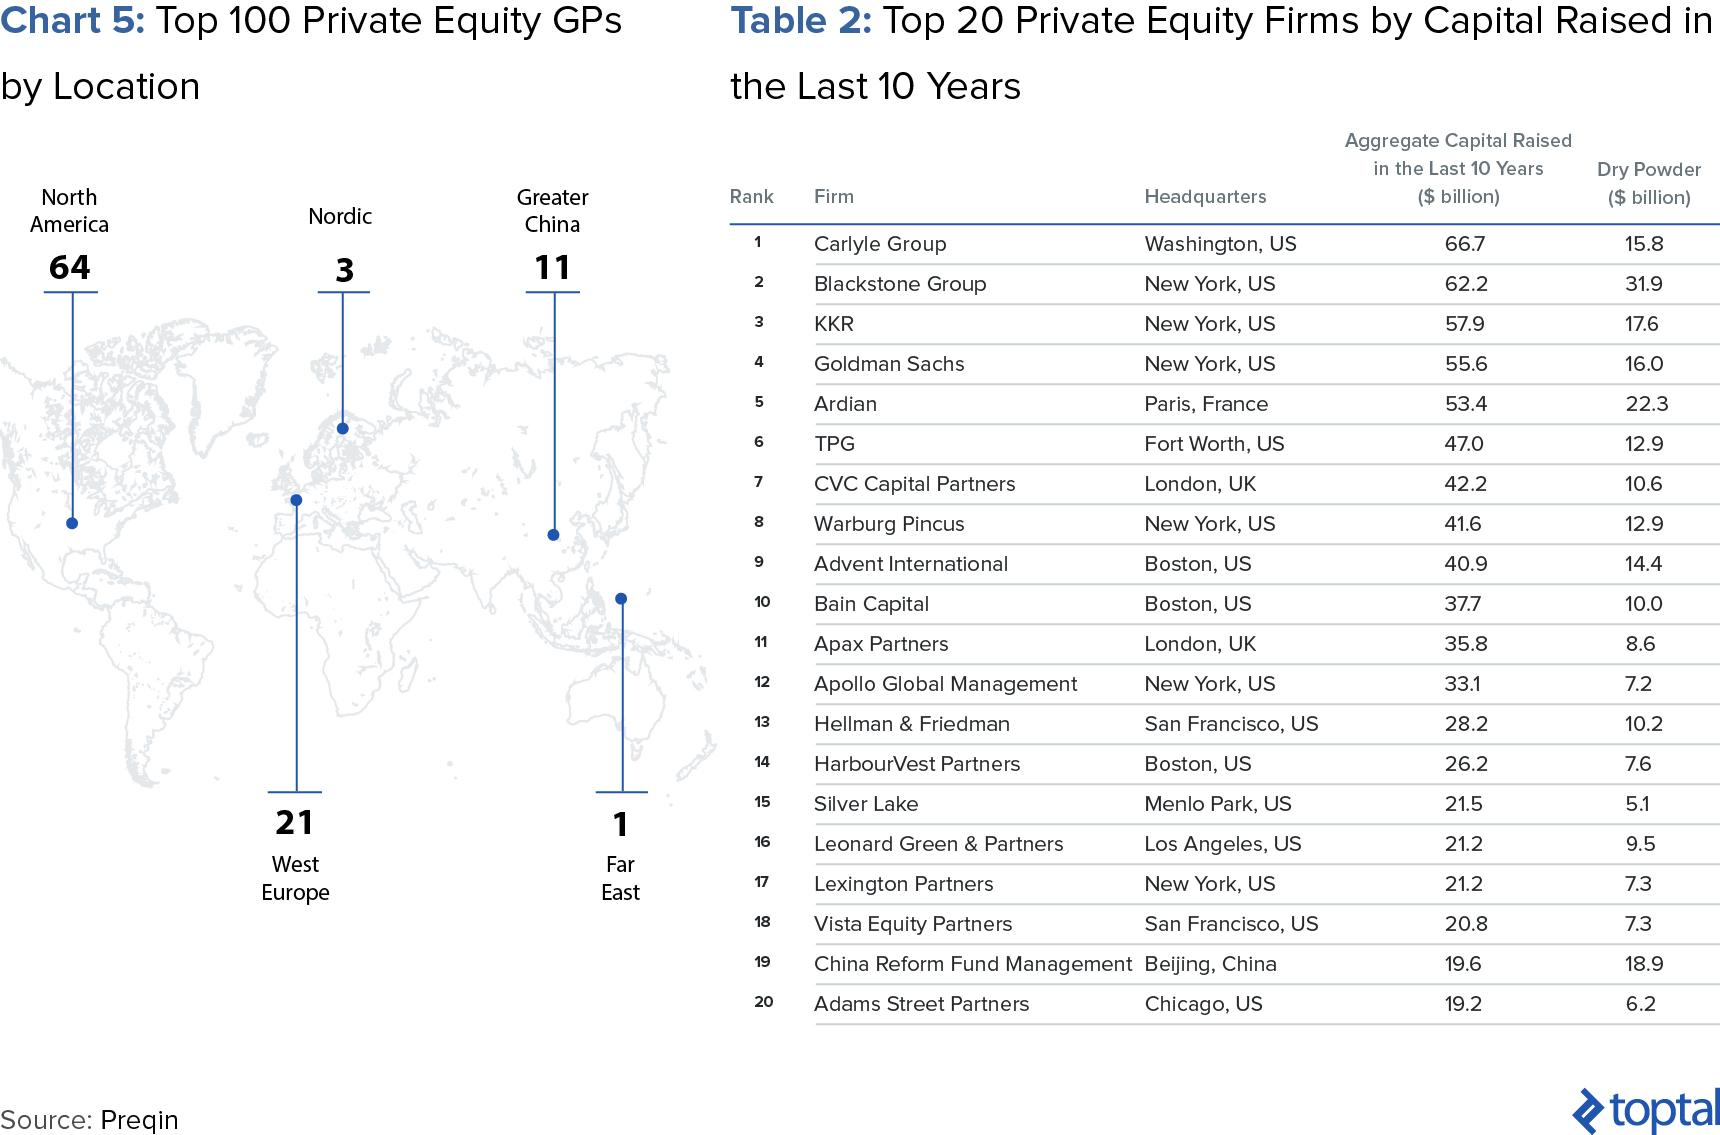 Chart 5: Top 100 Private Equity GPs by Location; and Table 2: Top 20 Private Equity Firms by Capital Raised in the Last 10 Years